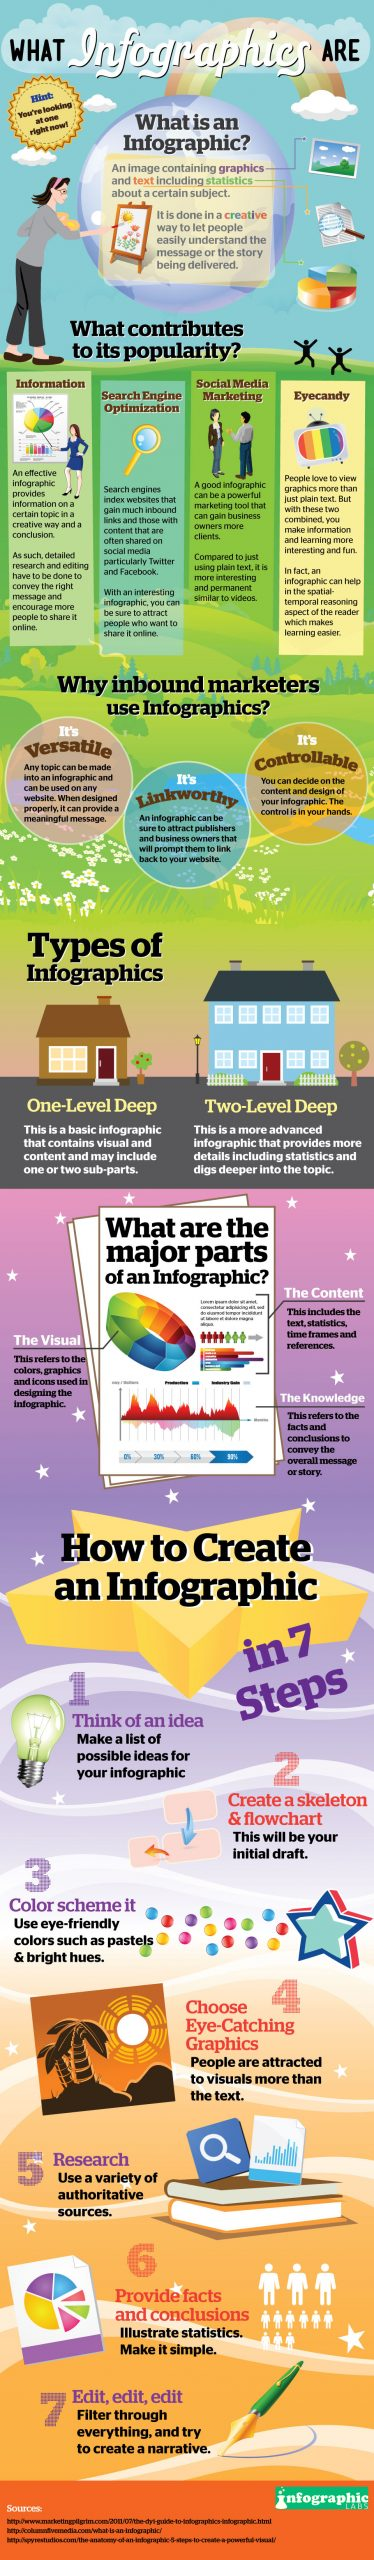 How To: Create an Infographic